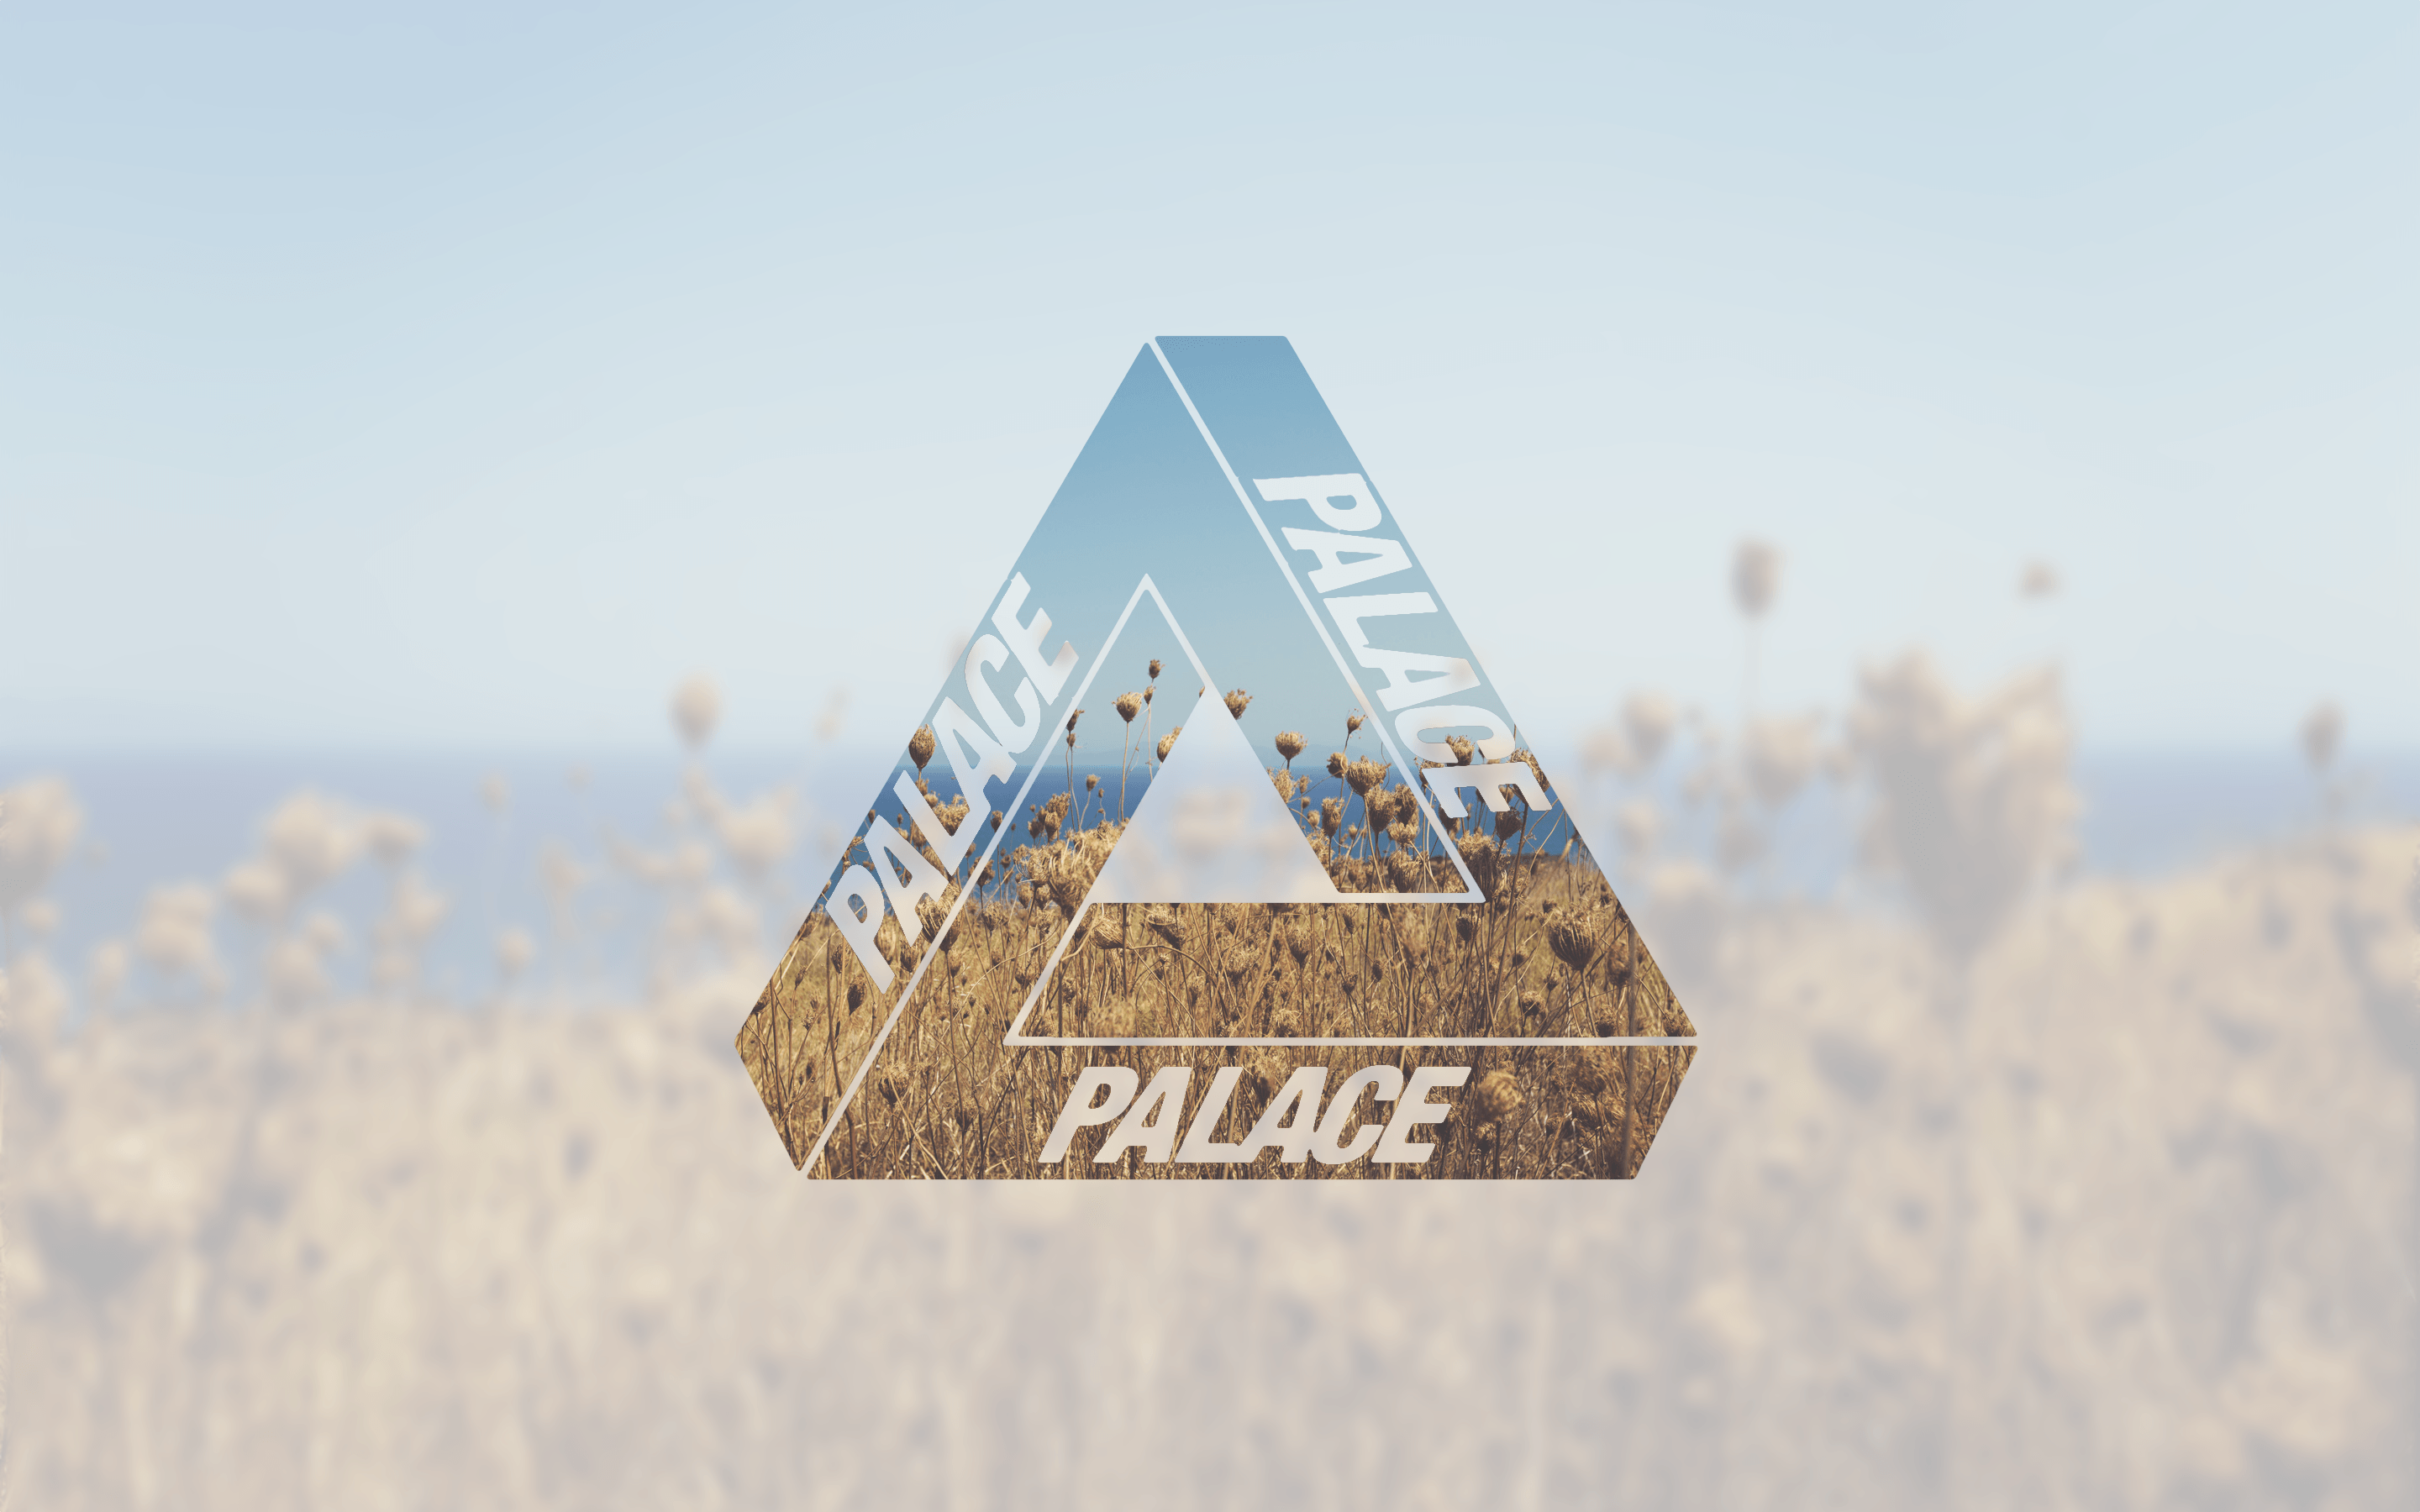 Palace Skateboards Wallpapers Wallpaper Cave